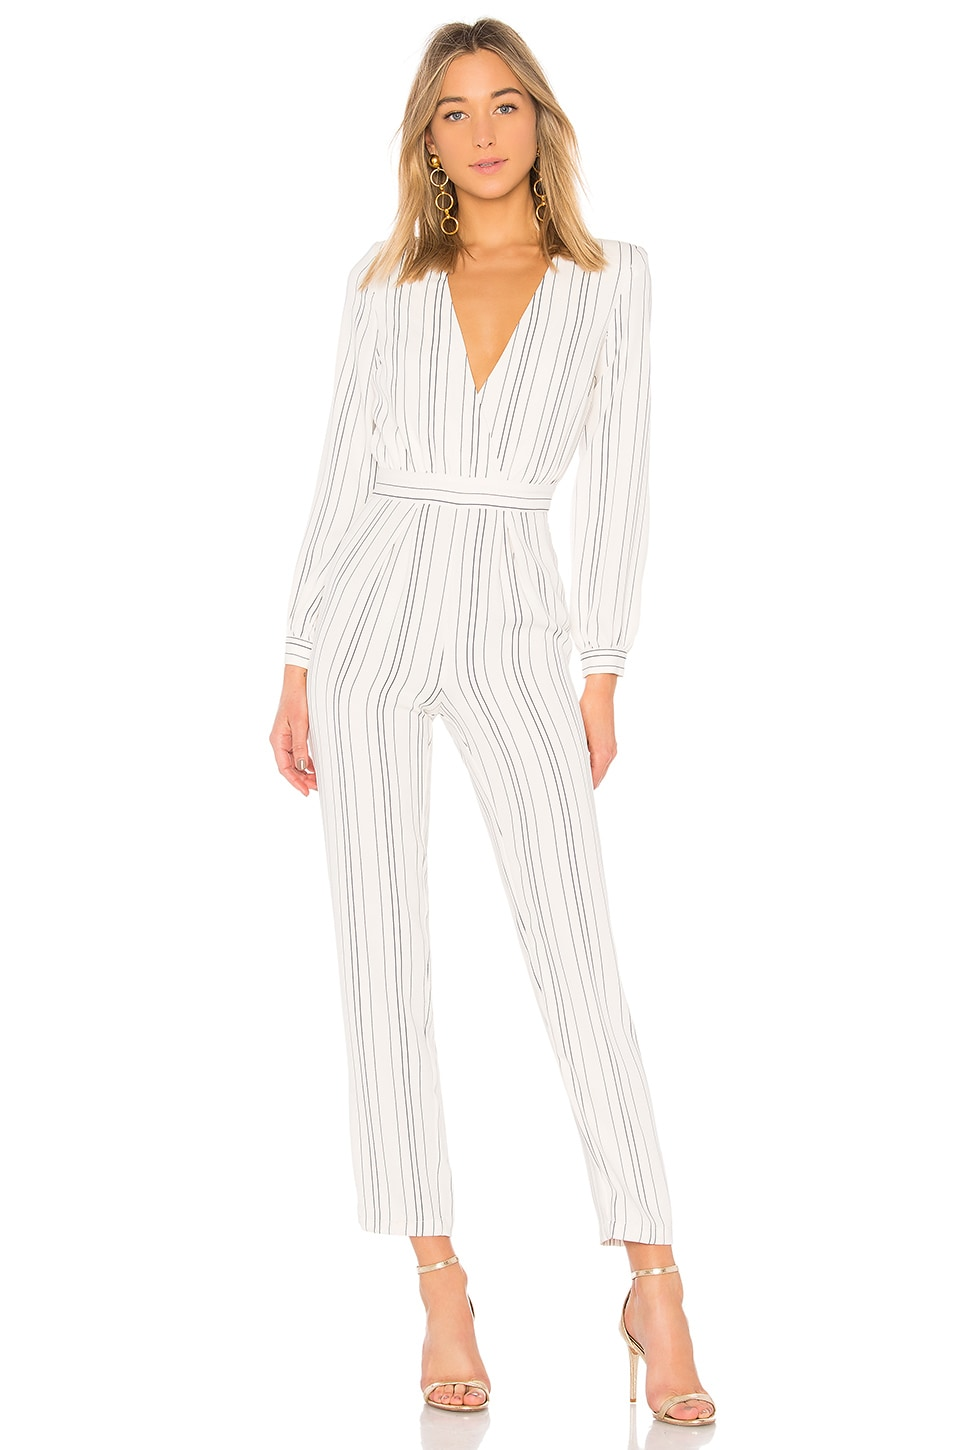 Lovers + Friends Study Abroad Jumpsuit in White Pinstripe